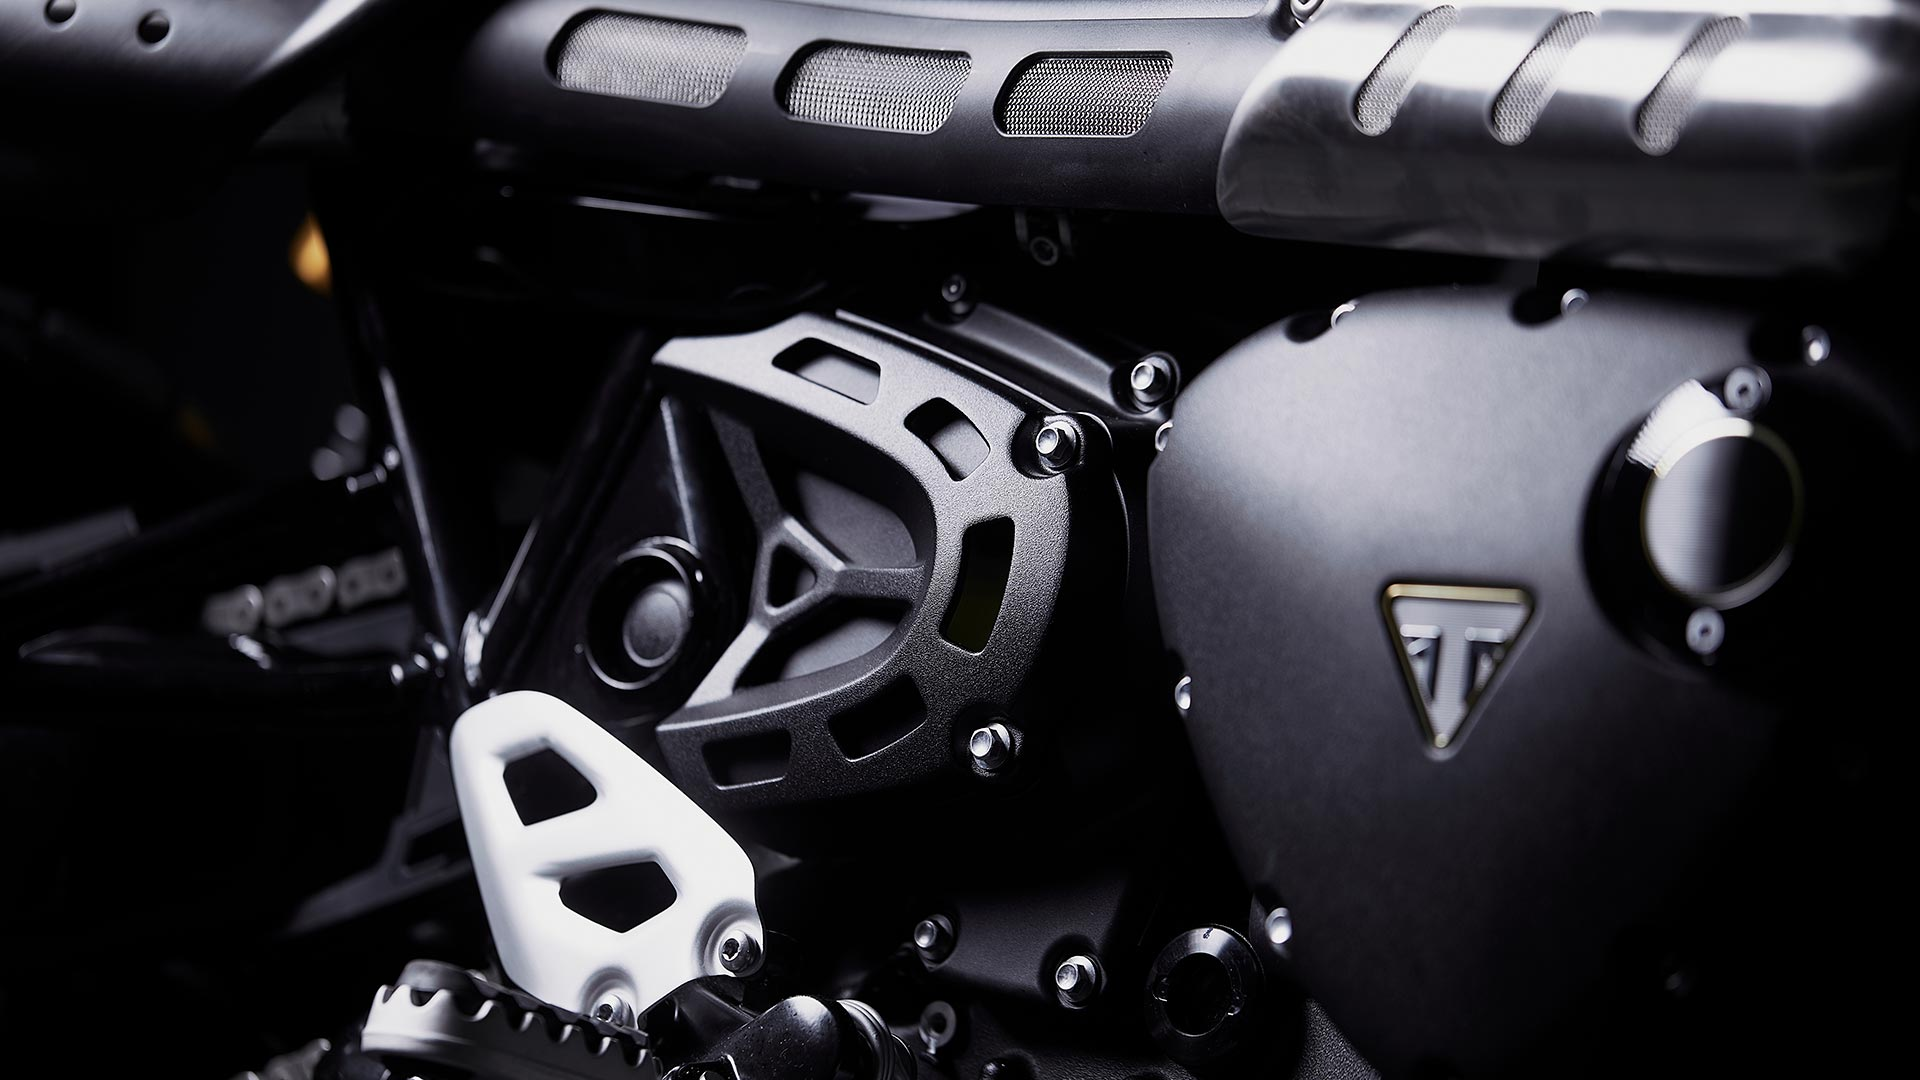 Close up of the Triumph Scrambler 1200 Bond Edition 'blacked-out' finishes